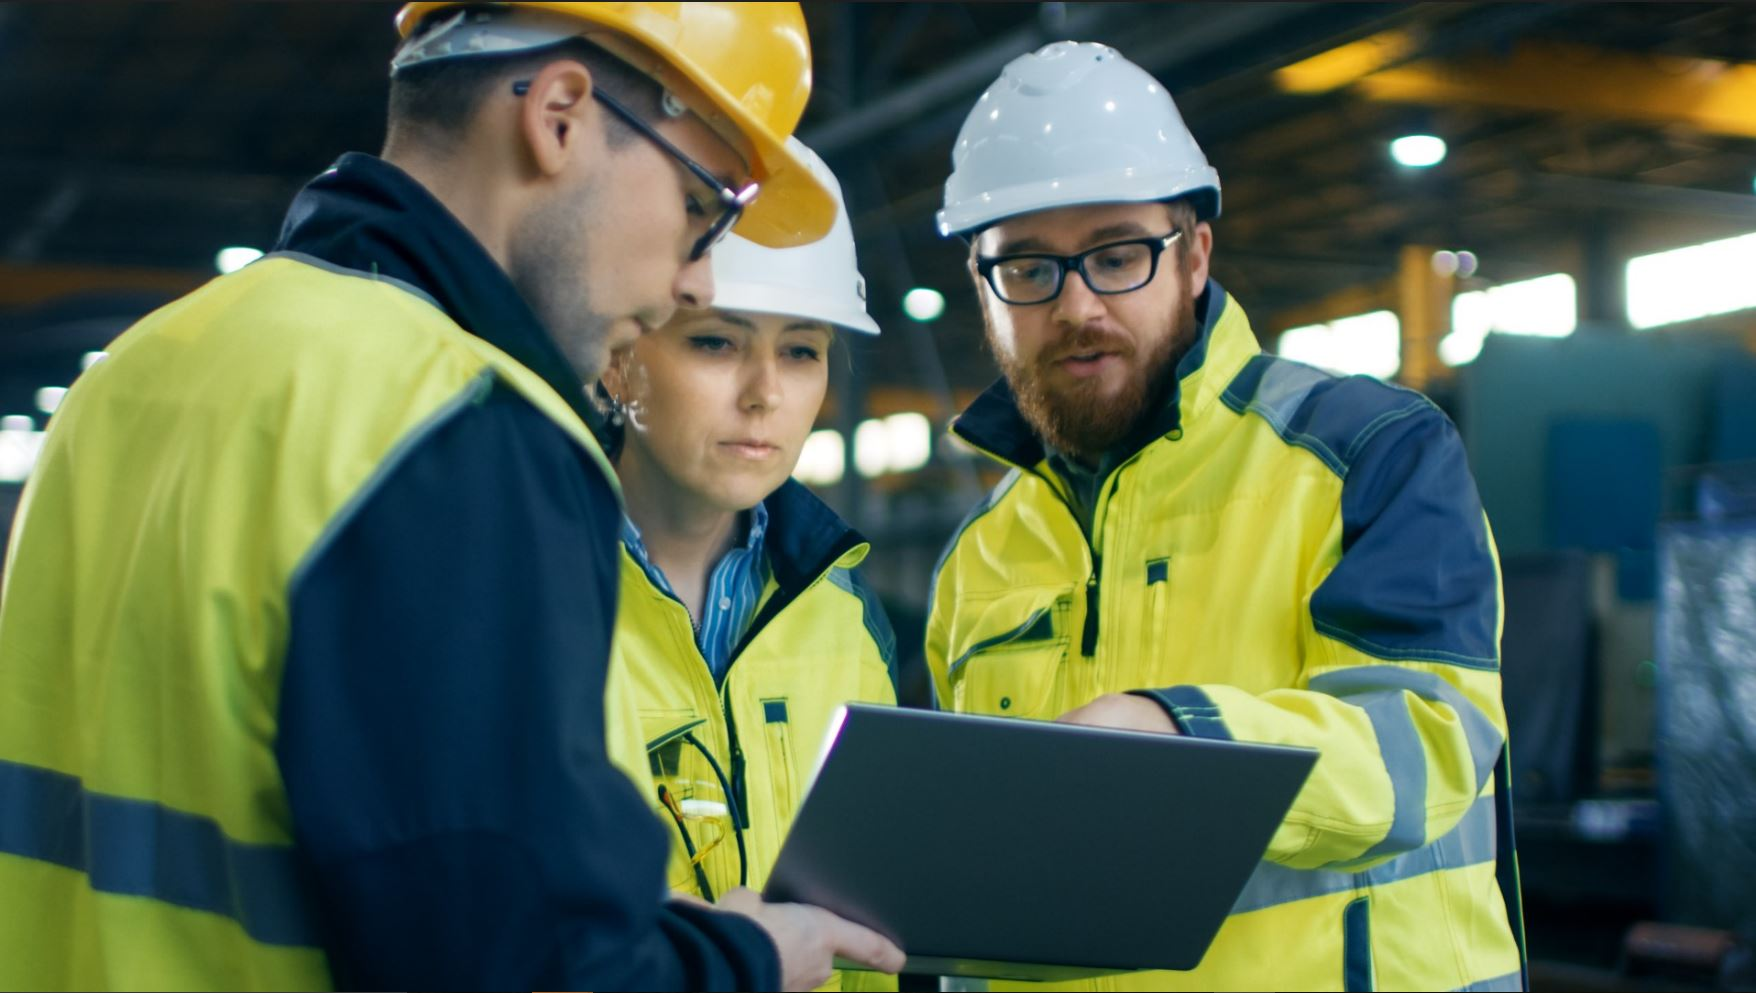 Safety workers looking at a digital board.